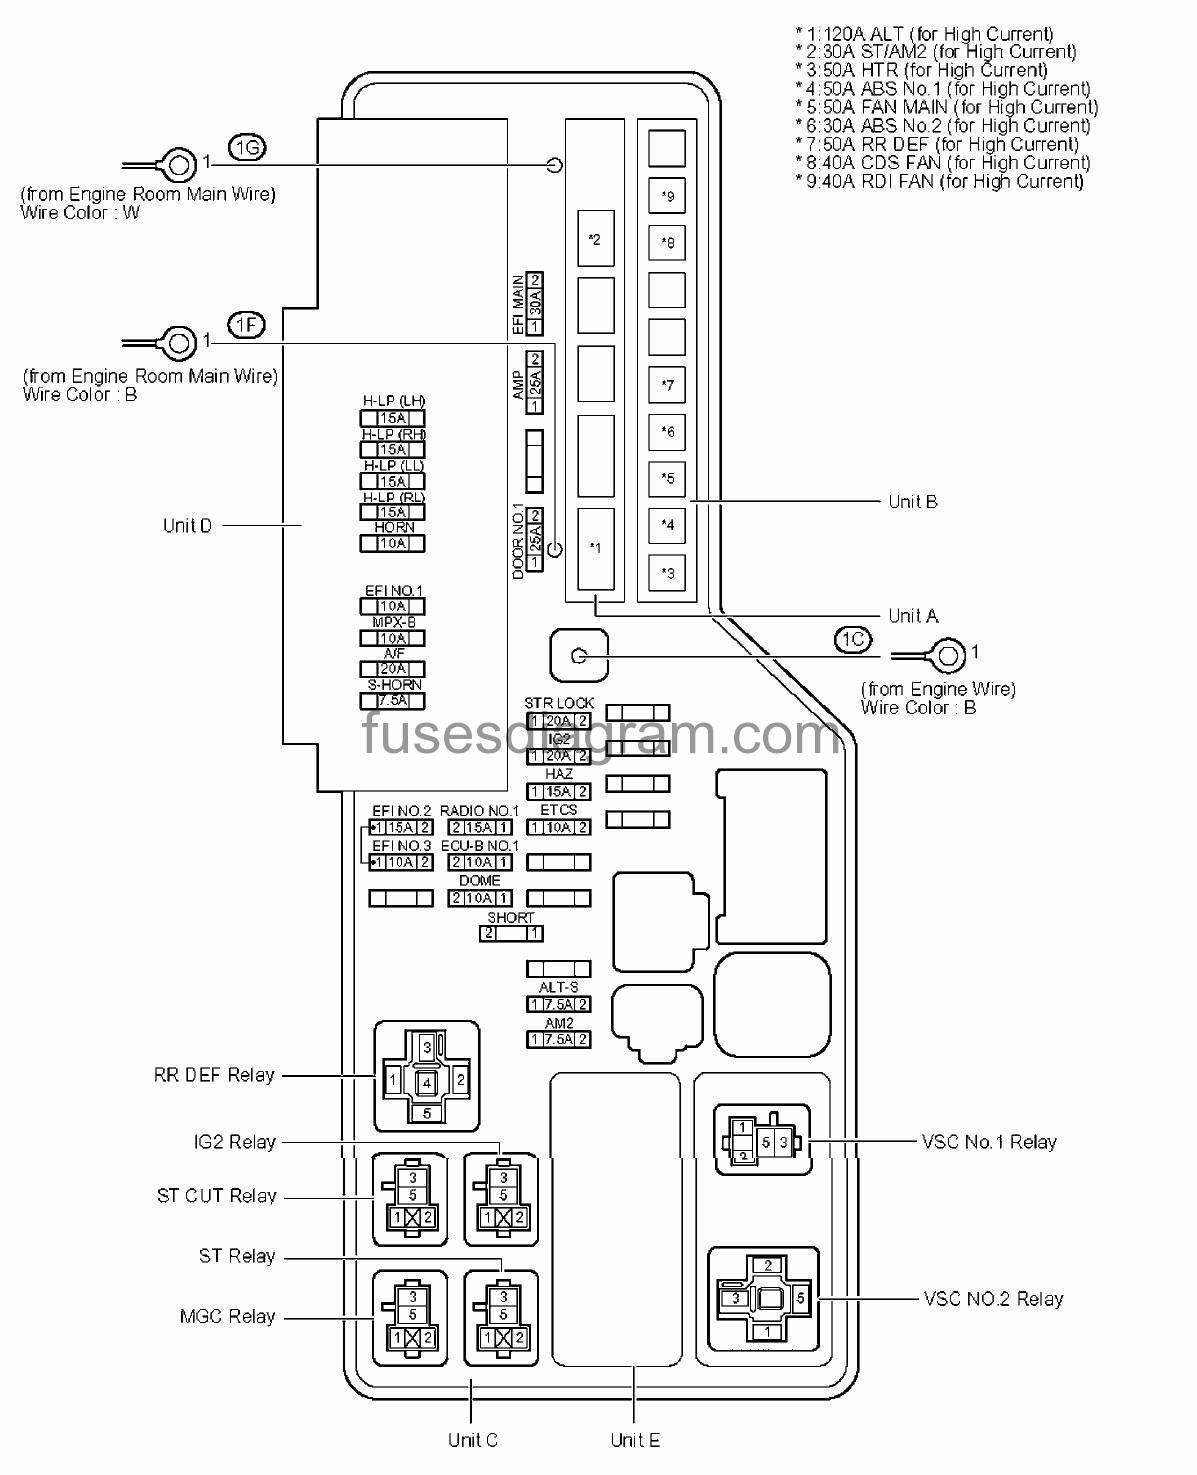 hight resolution of fuse box toyota camry 2000 simple wiring diagram 2002 pontiac montana fuse box diagram 2002 toyota